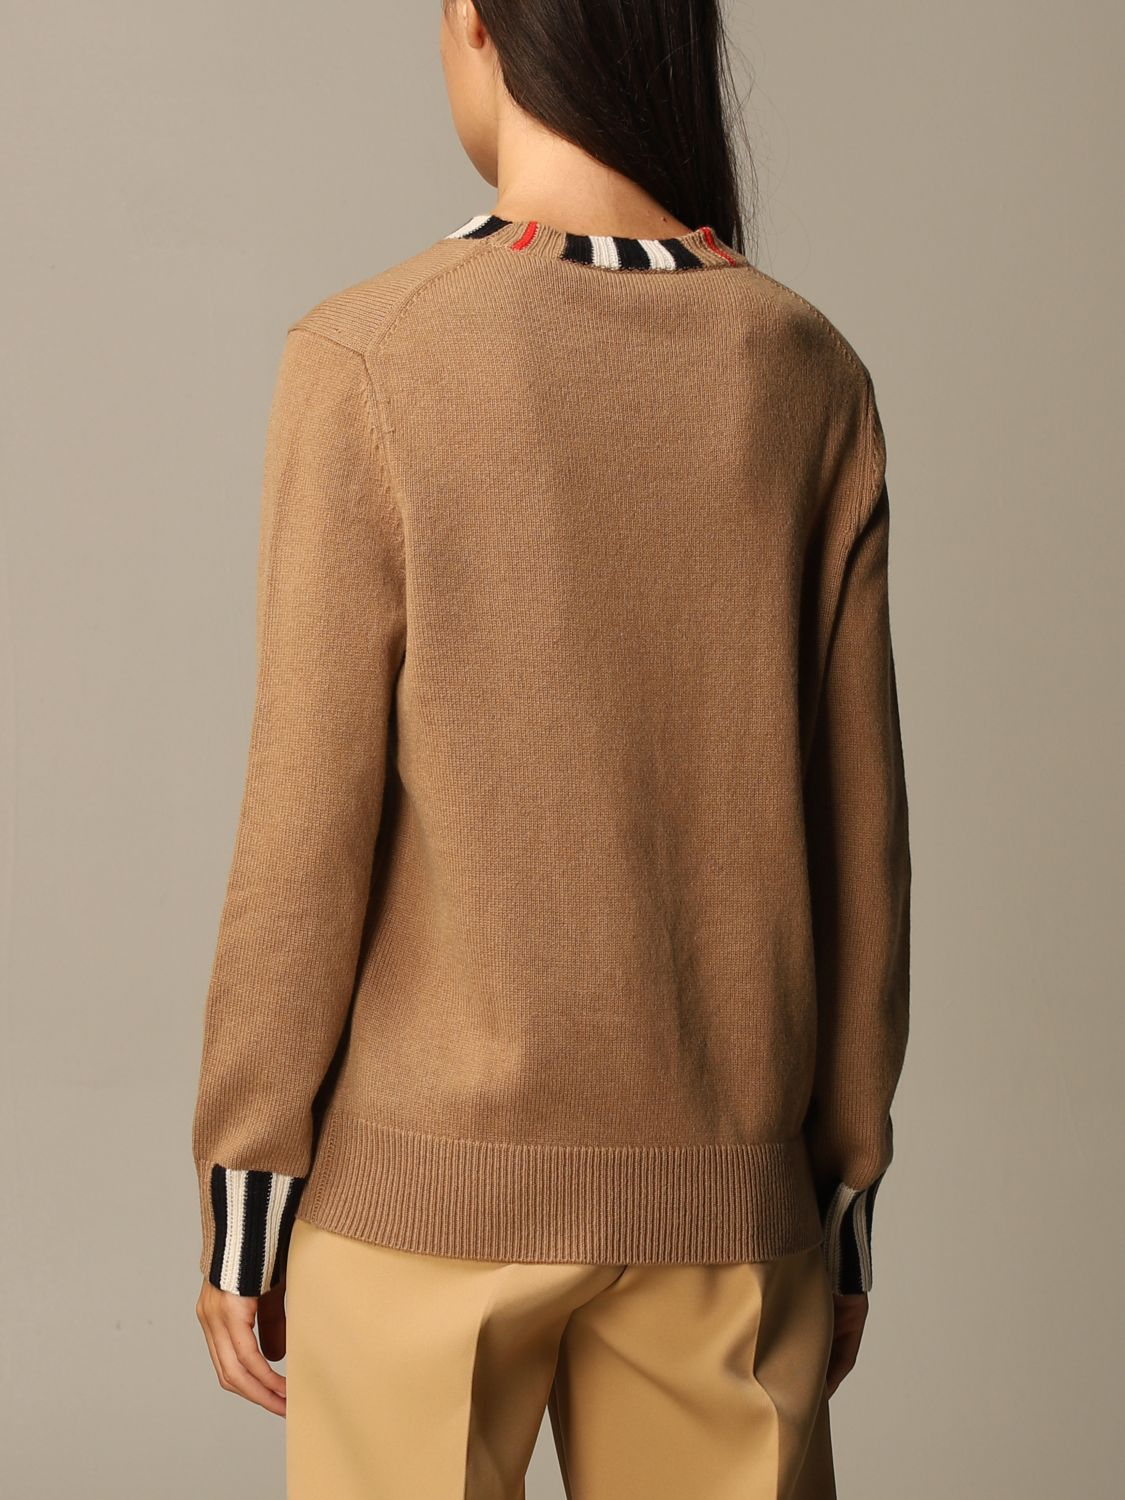 Jumper Burberry: Jumper women Burberry beige 2